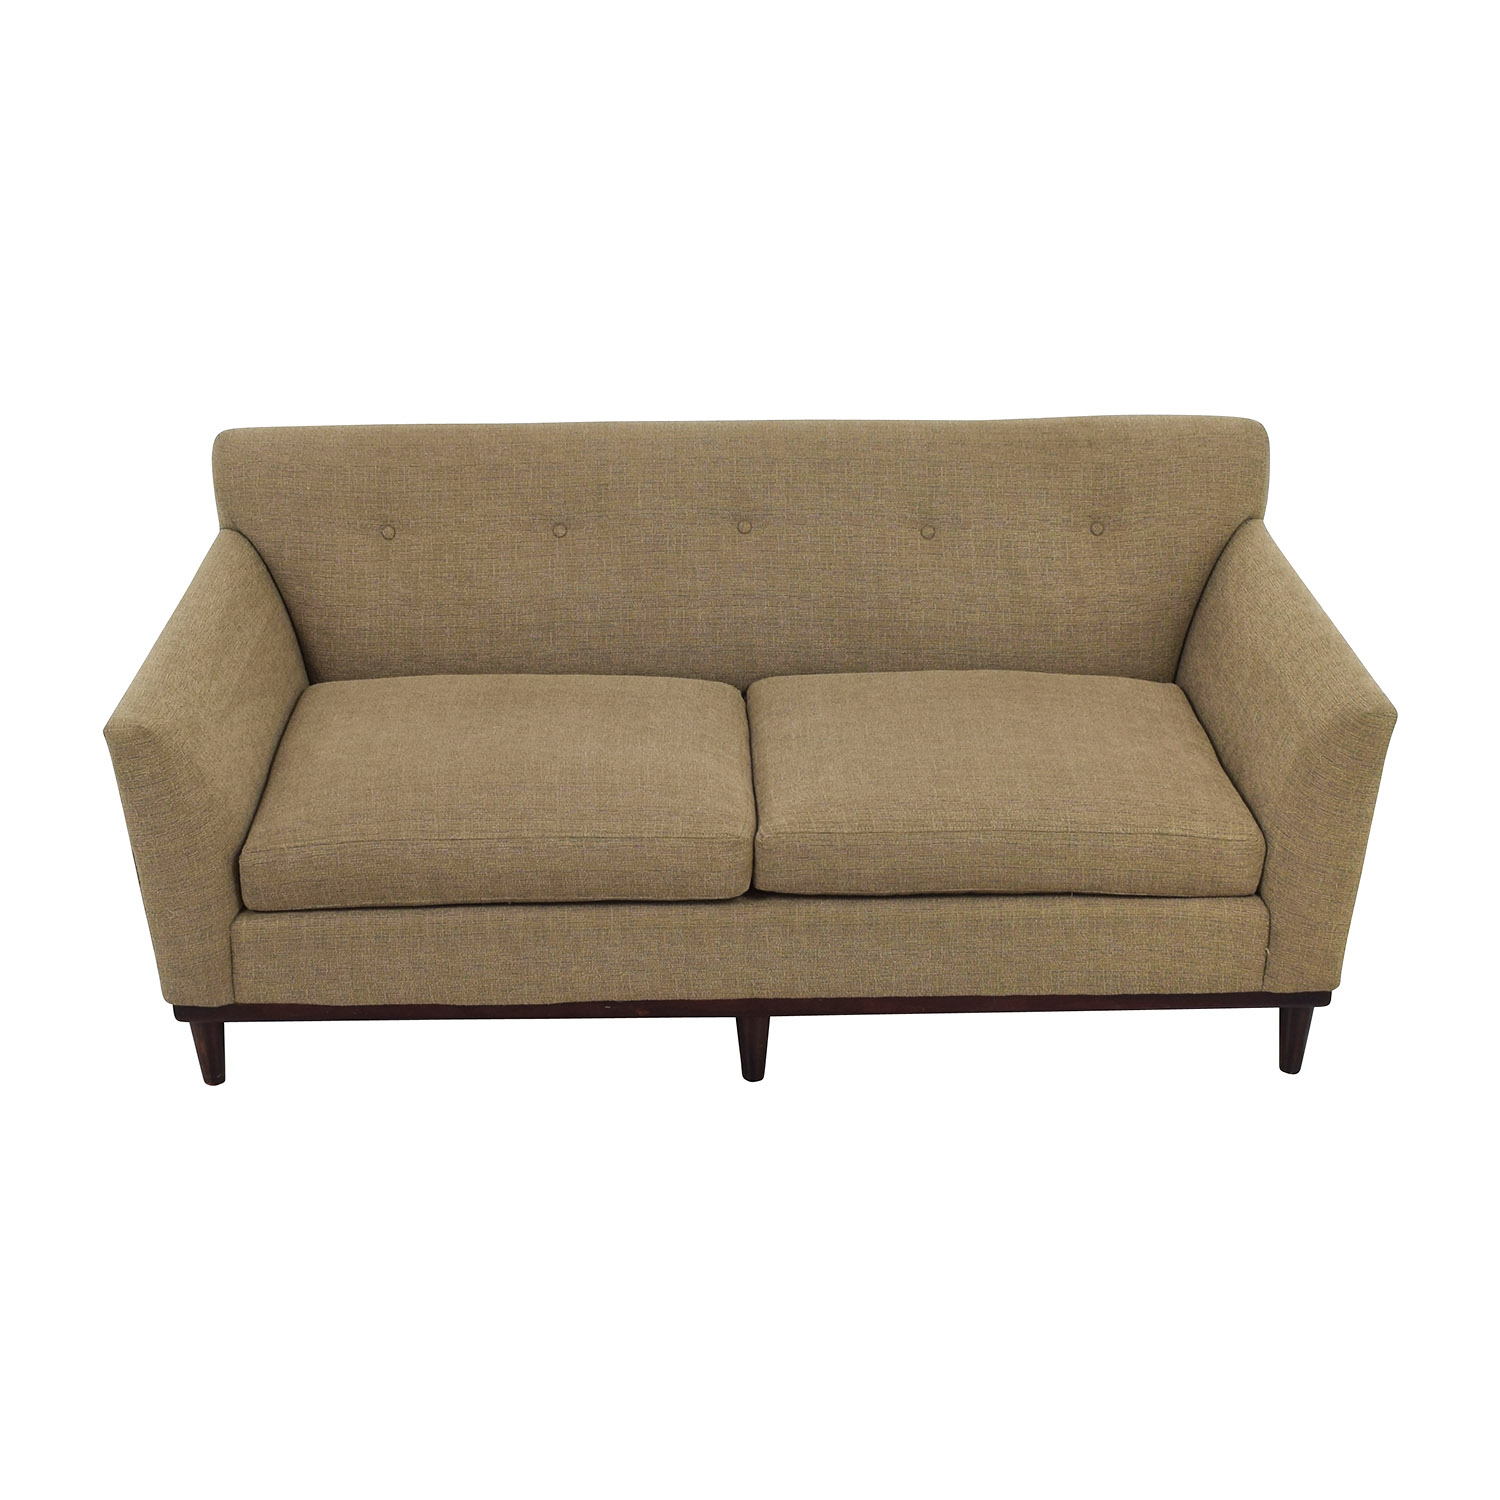 Tweed Sofa Tweed Couch Wayfair Thesofa